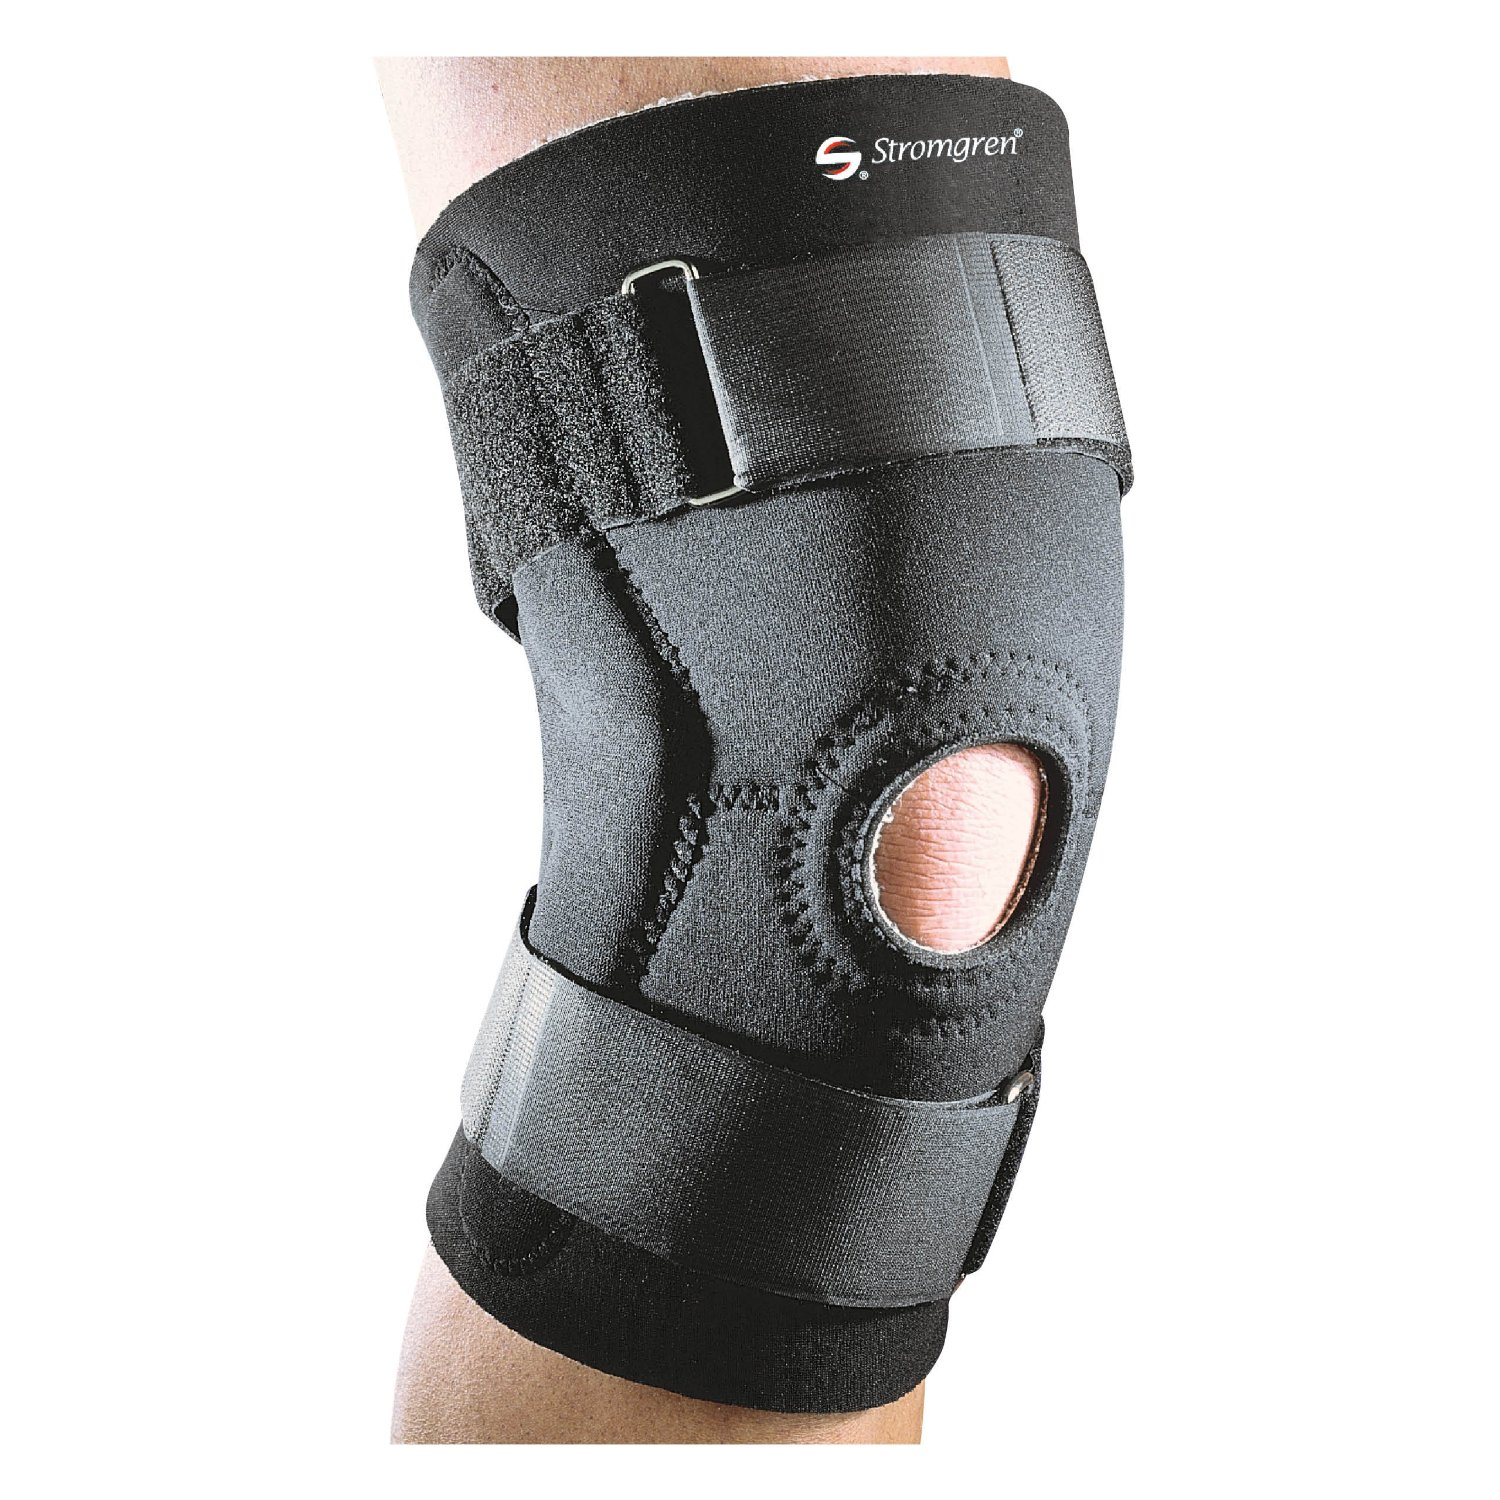 How to Get the Best One? Special Report on Neoprene Knee Braces